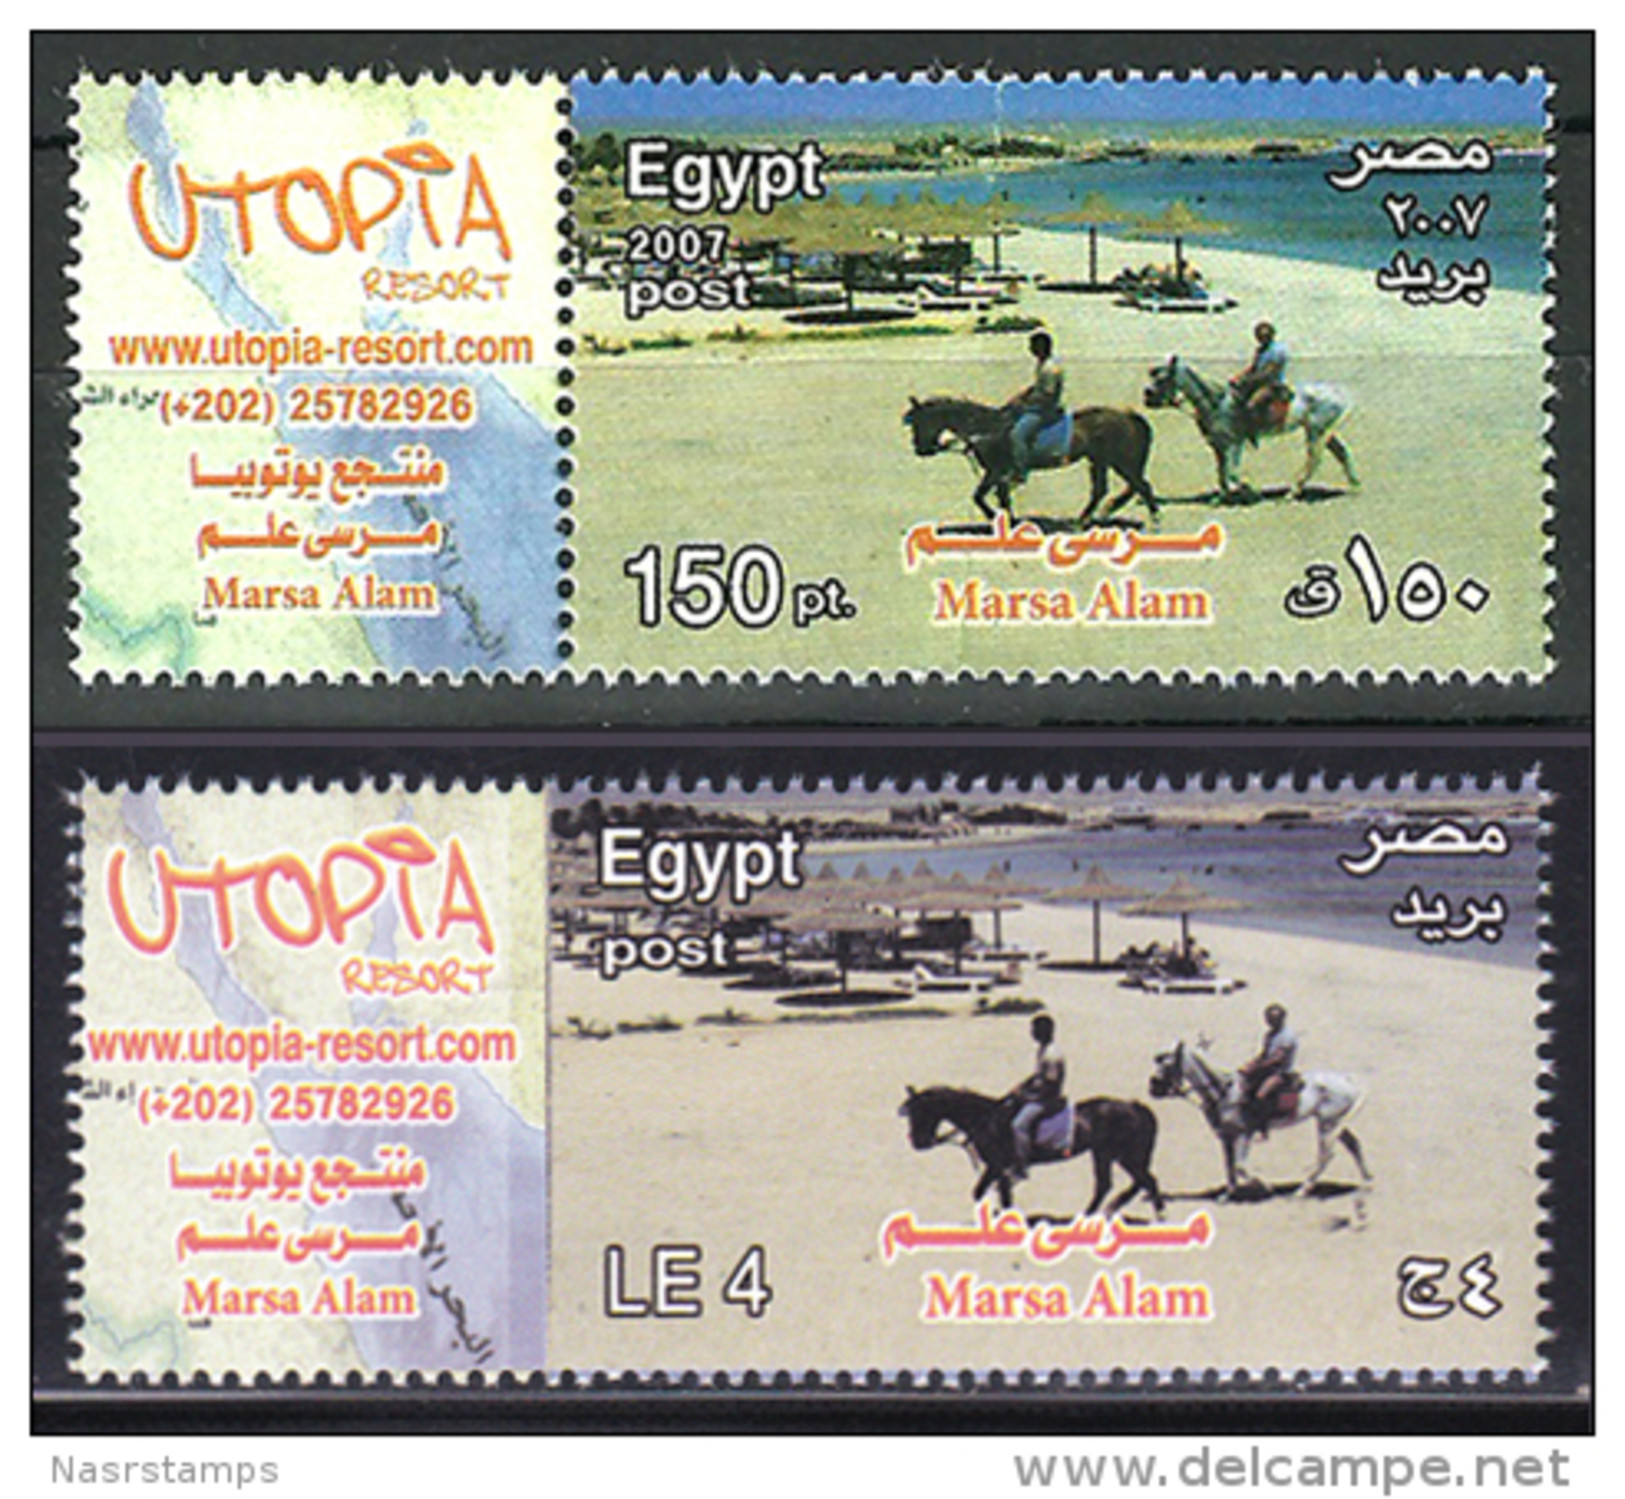 Egypt - Both Issues - 2007 & 2013 - Limited Edition - Unlisted - ( Utopia Resort - Marsa Alam - Red Sea ) - MNH (**) - Nuovi